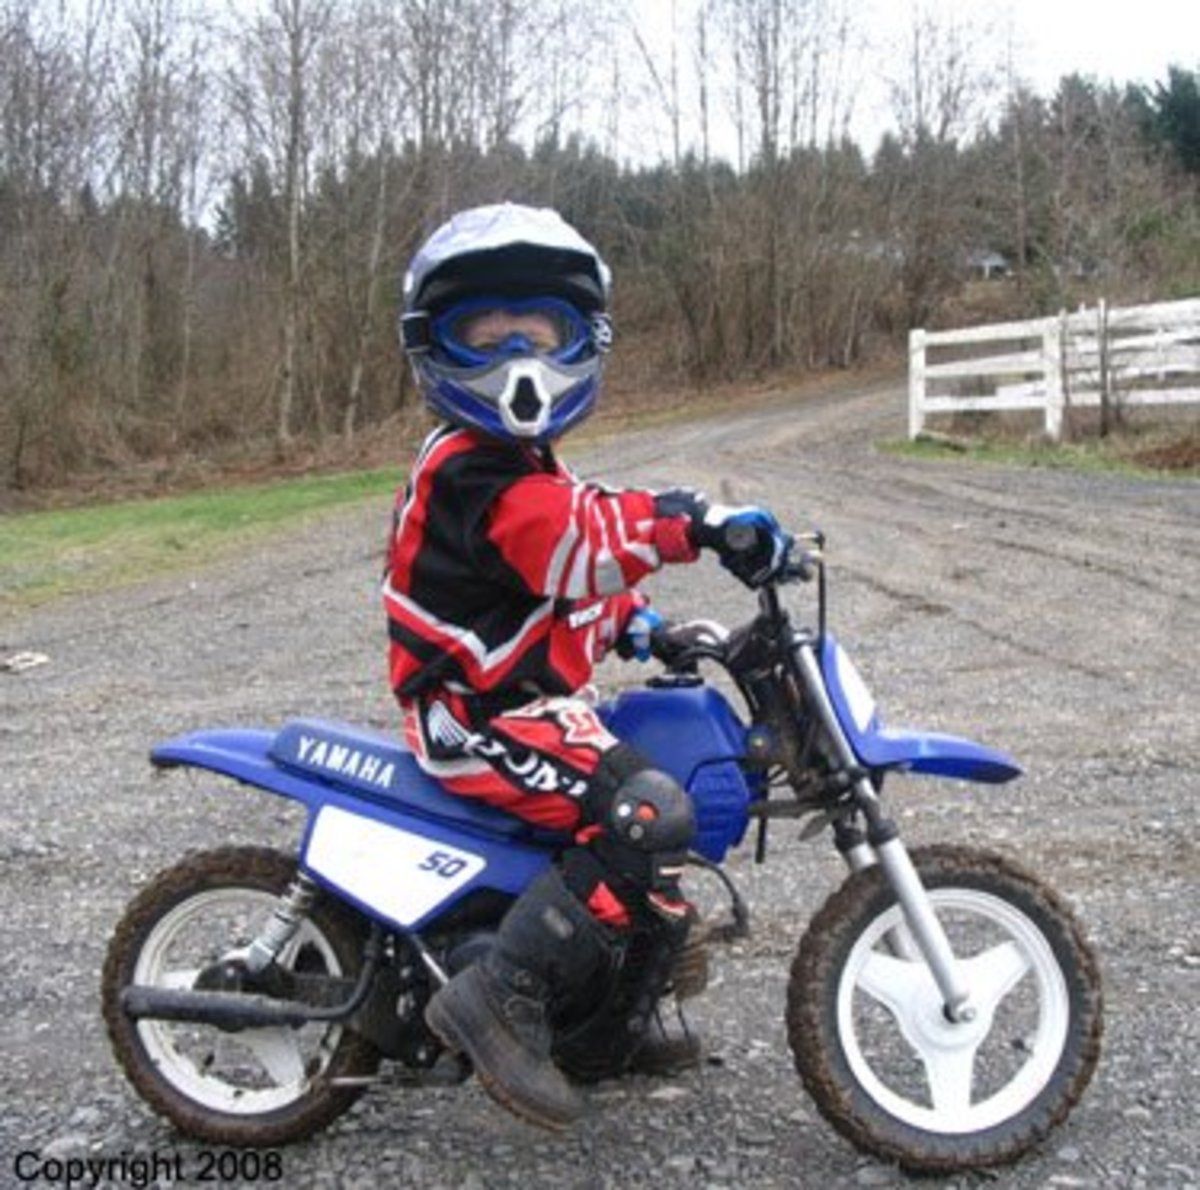 How to Get Your Kid Started Racing Dirt Bikes | AxleAddict